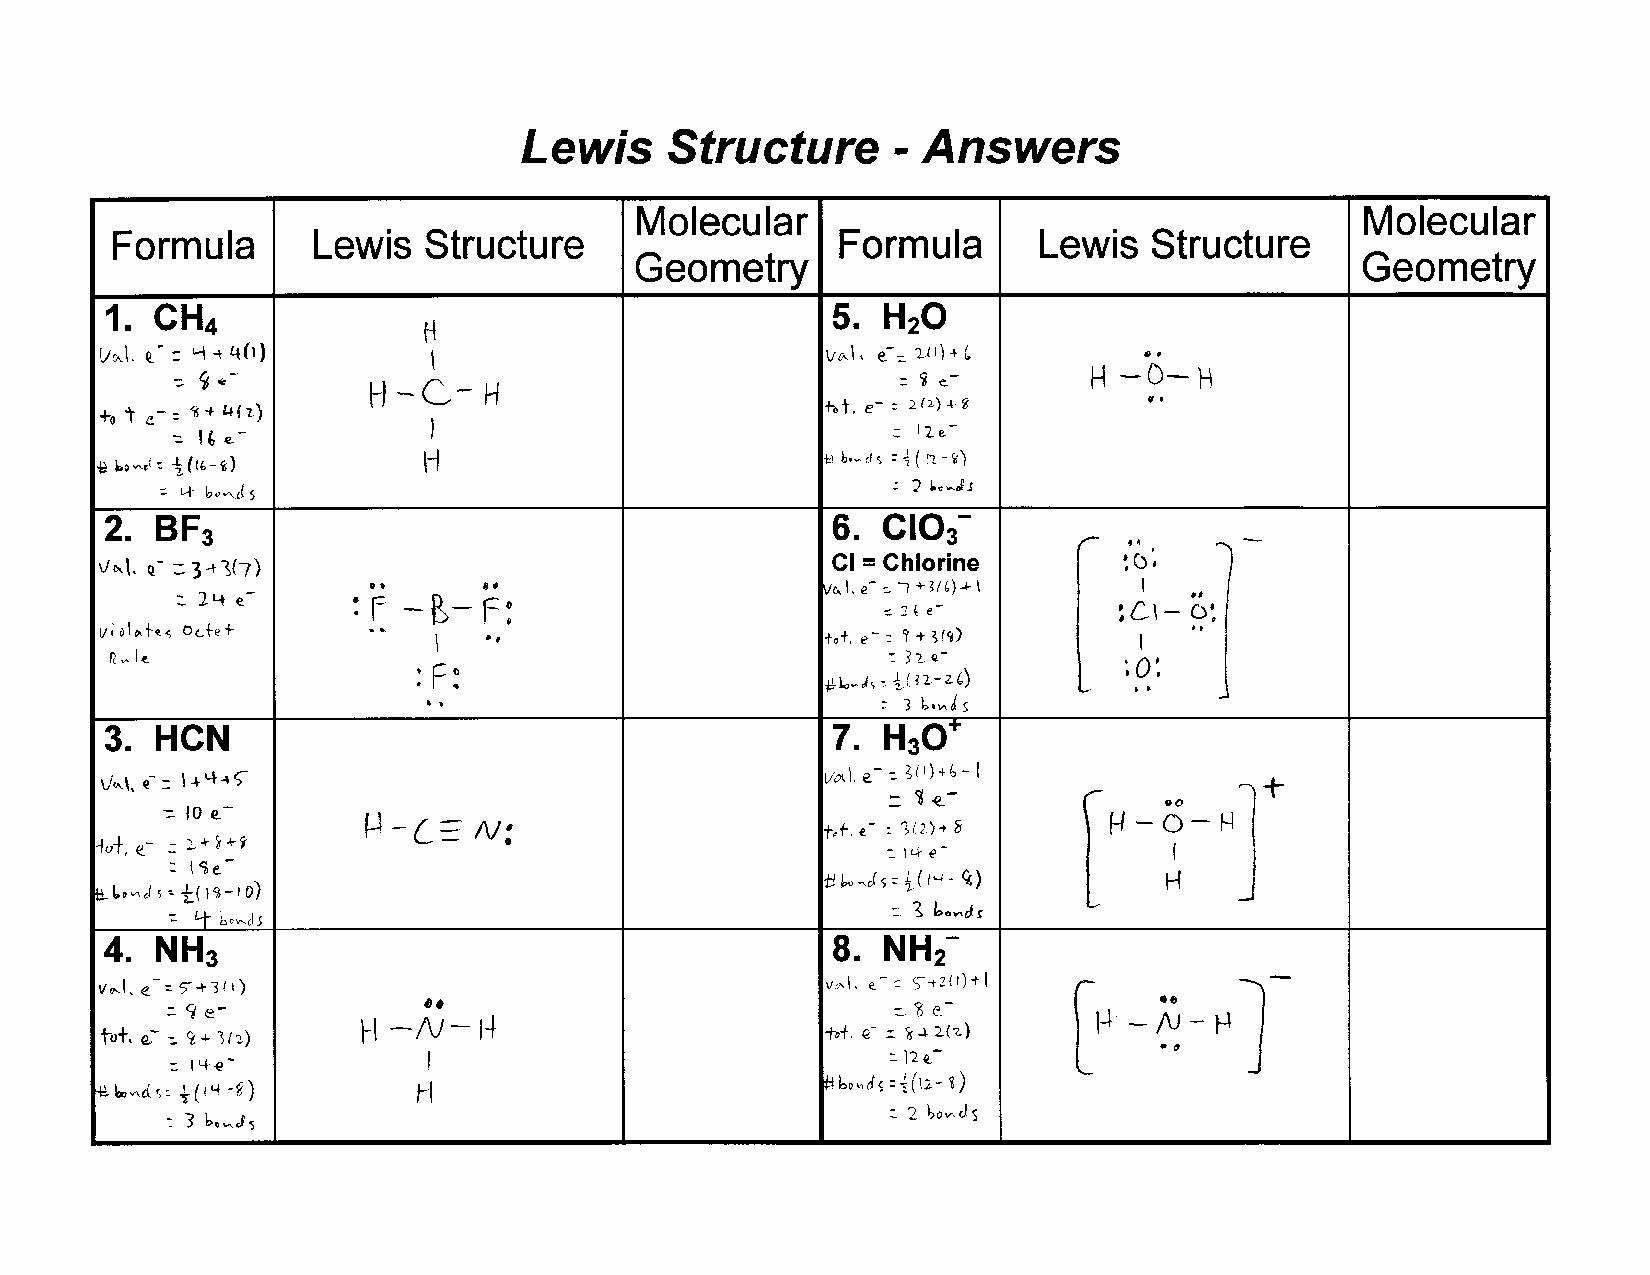 Lewis Structure Worksheet with Answers Unique Rb2s Lewis Structures Worksheet with Answers